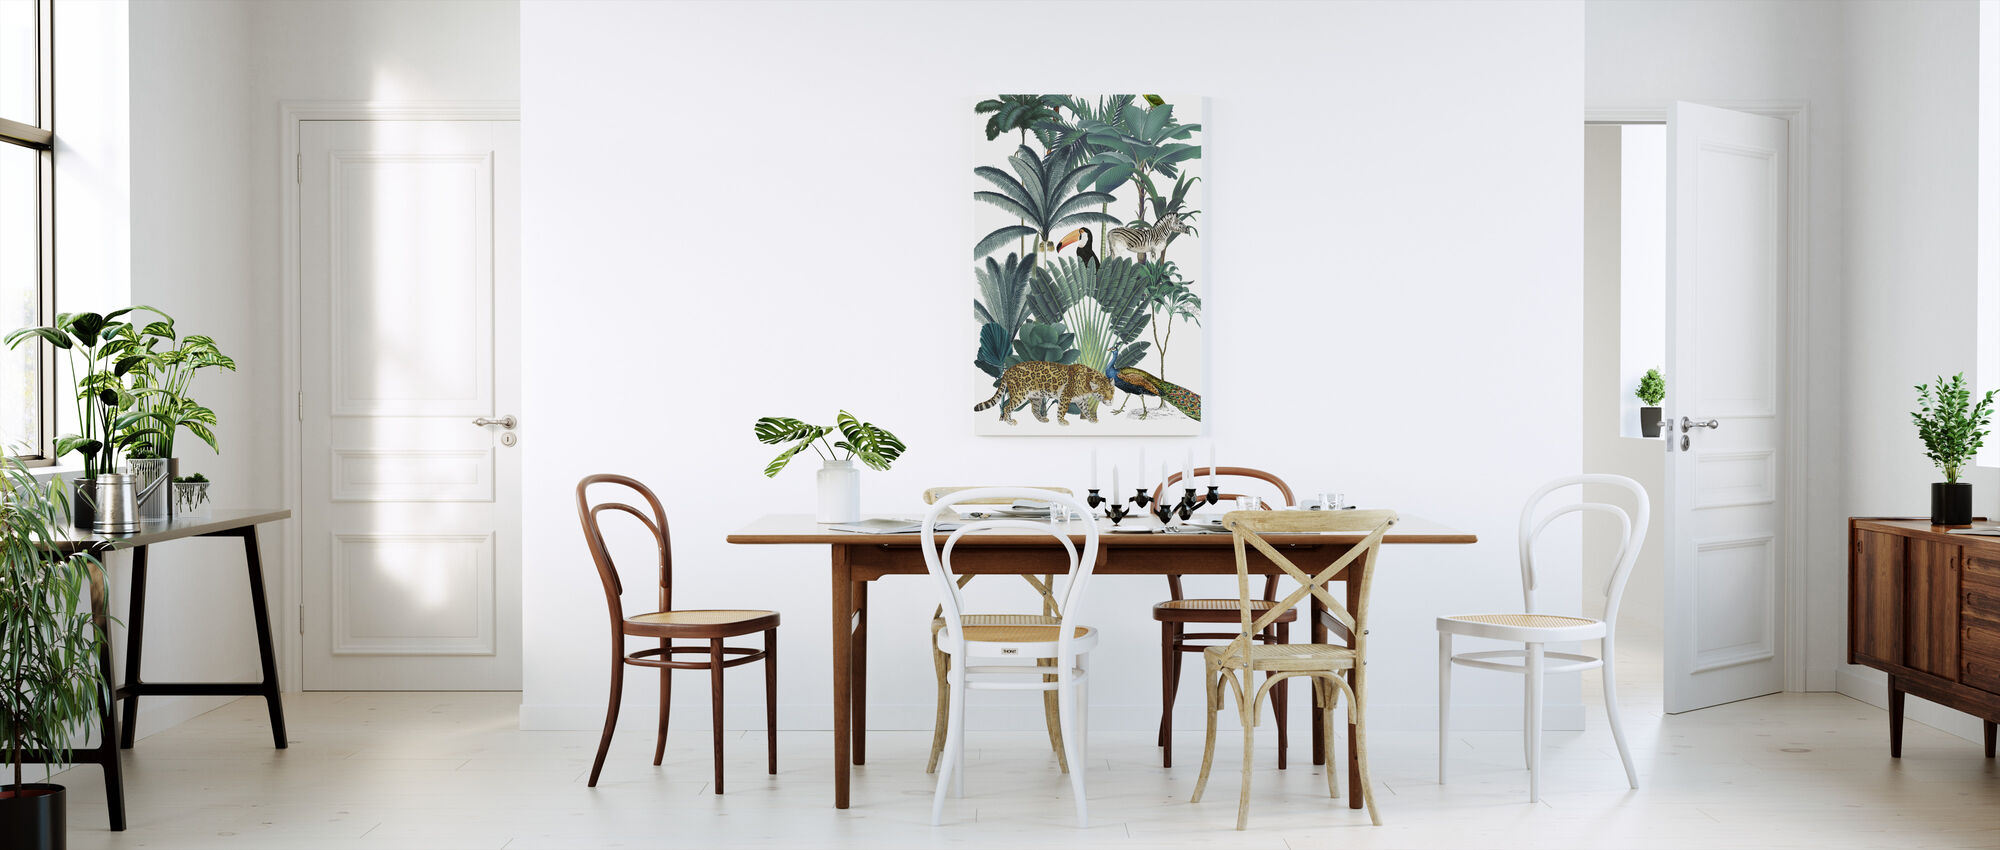 Royal Palms - Canvas print - Kitchen